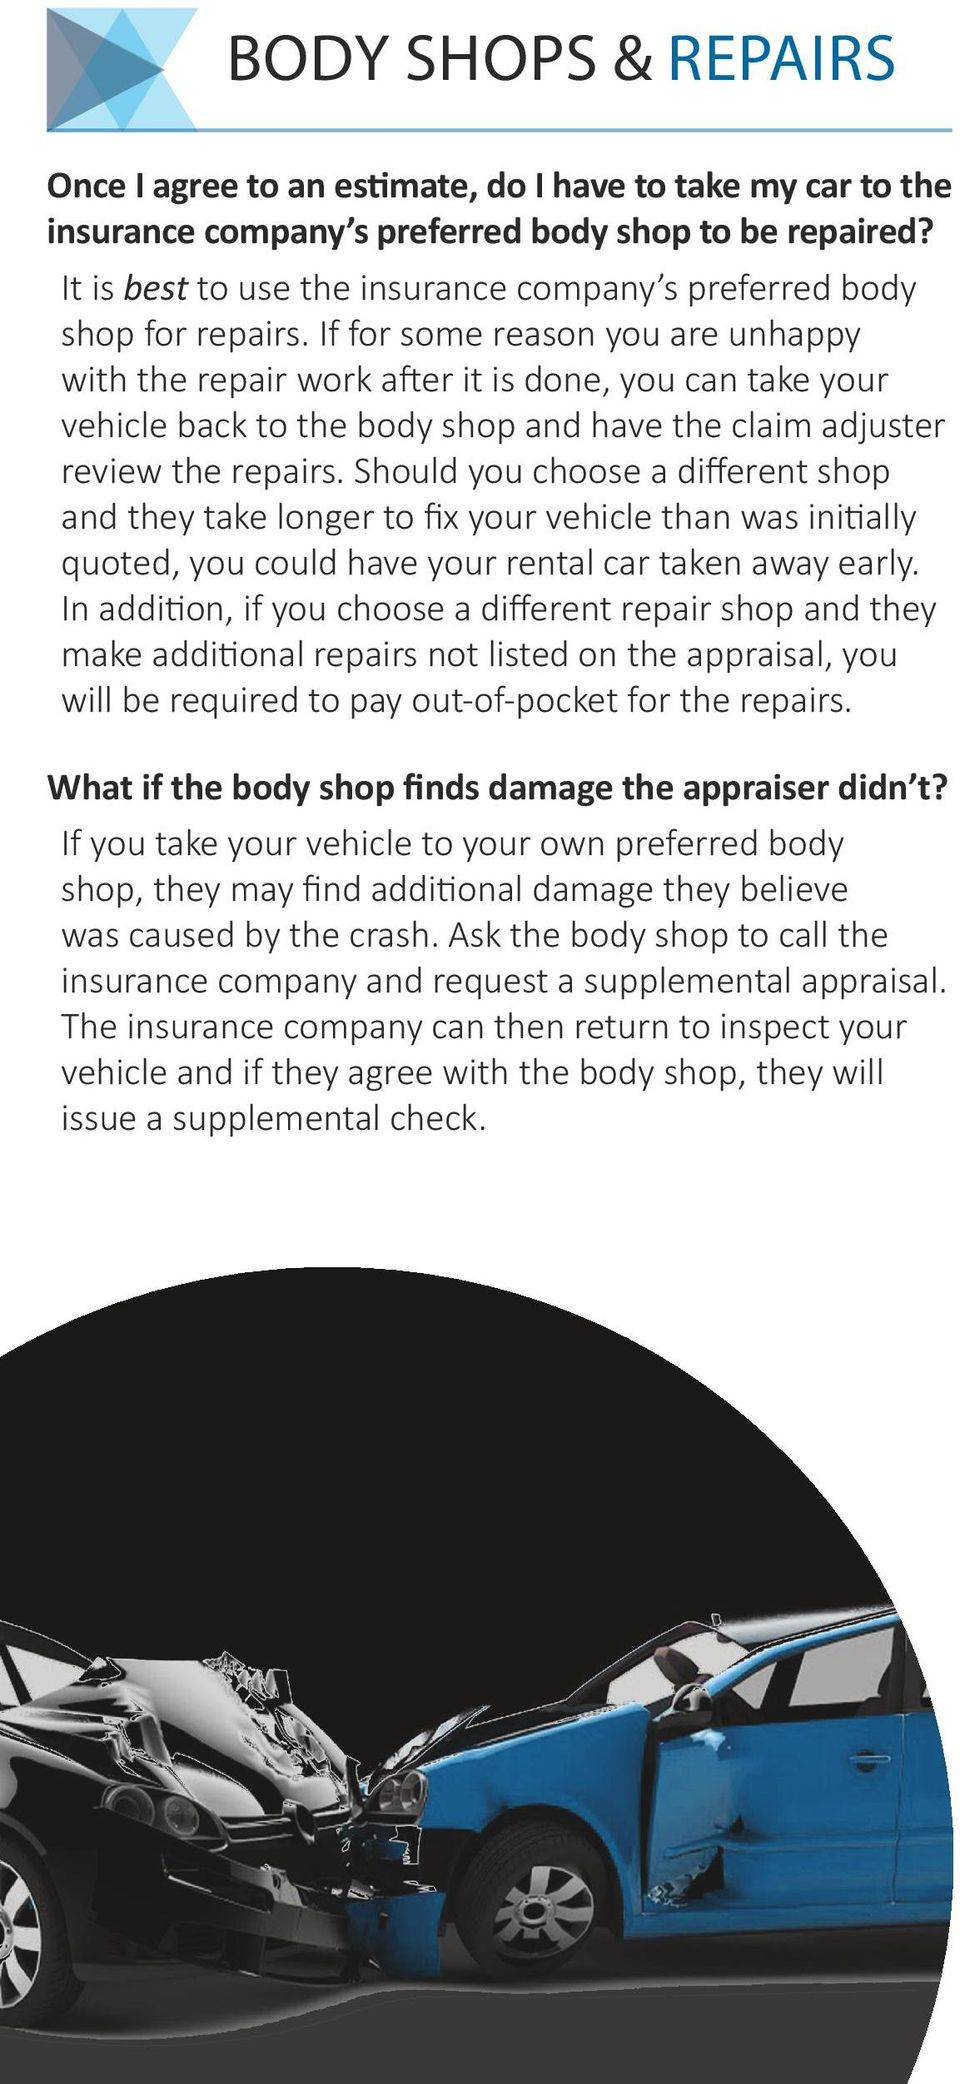 If for some reason you are unhappy with the repair work after it is done, you can take your vehicle back to the body shop and have the claim adjuster review the repairs.